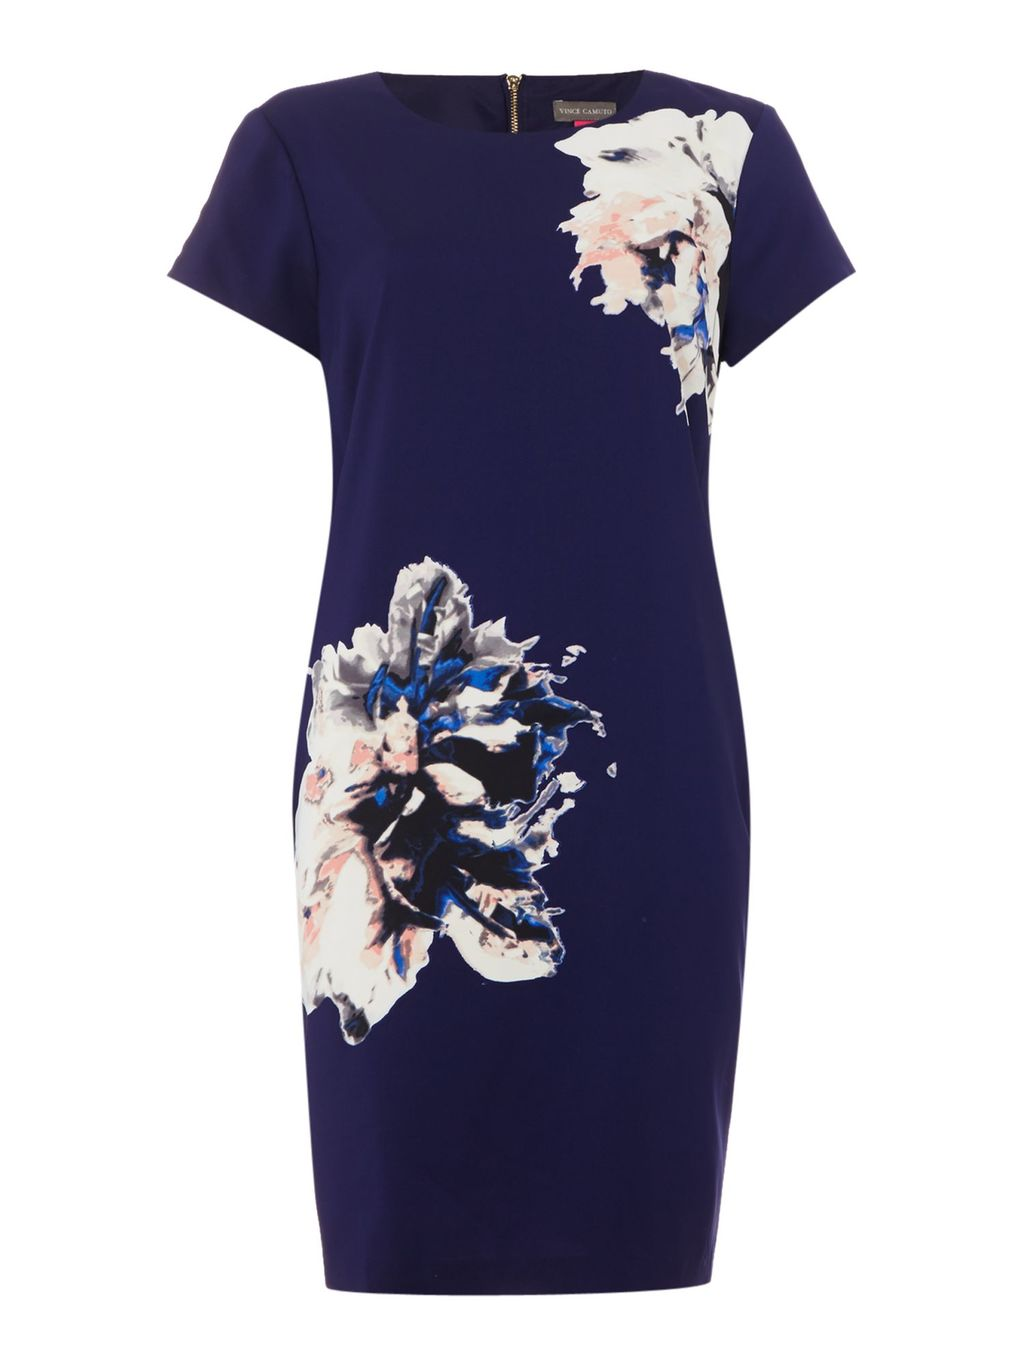 Cap Sleeve Floral Print Shift Dress, Navy - style: shift; secondary colour: ivory/cream; predominant colour: navy; occasions: evening; length: just above the knee; fit: body skimming; fibres: polyester/polyamide - stretch; neckline: crew; sleeve length: short sleeve; sleeve style: standard; pattern type: fabric; pattern: florals; texture group: other - light to midweight; season: s/s 2016; wardrobe: event